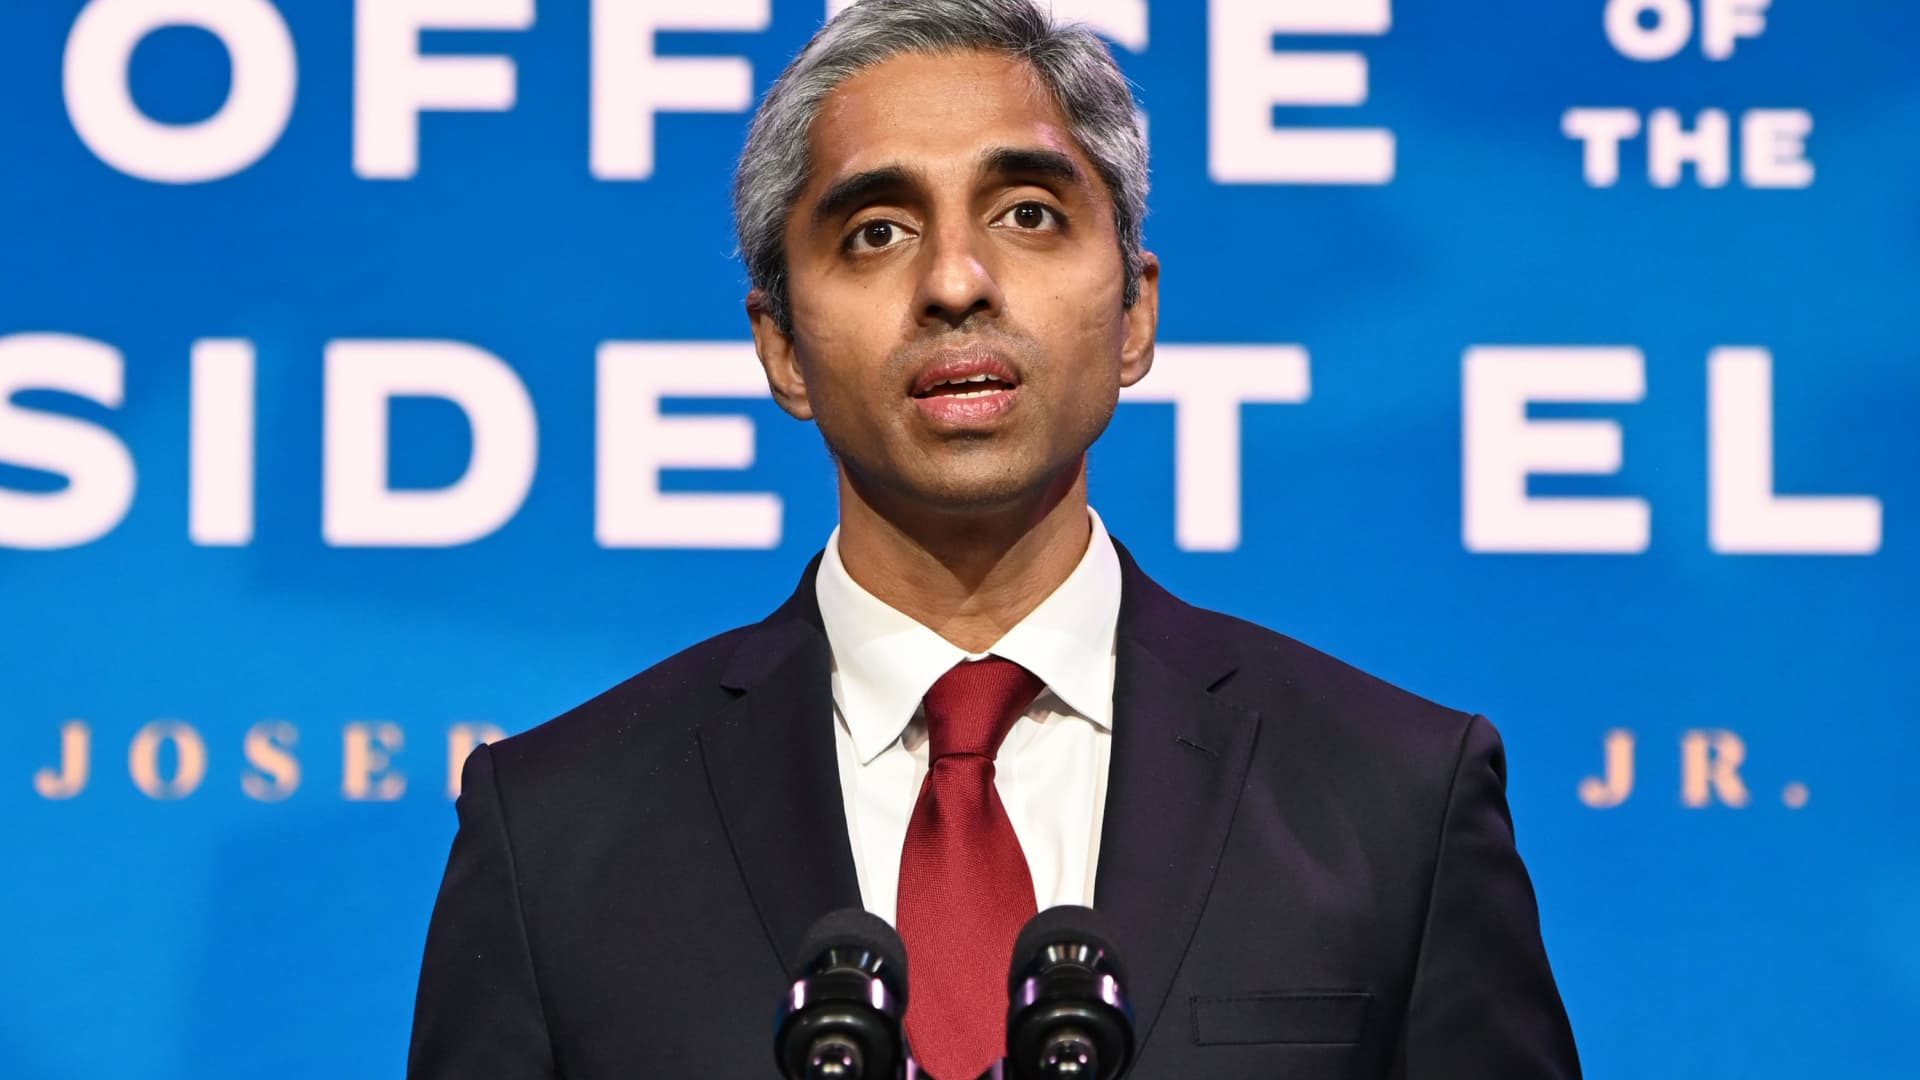 Vivek Murthy, who has been nominated by President-elect Joe Biden to serve as the US Surgeon General, speaks as Biden announces his team tasked with dealing with the Covid-19 pandemic at The Queen in Wilmington, Delaware on December 8, 2020.